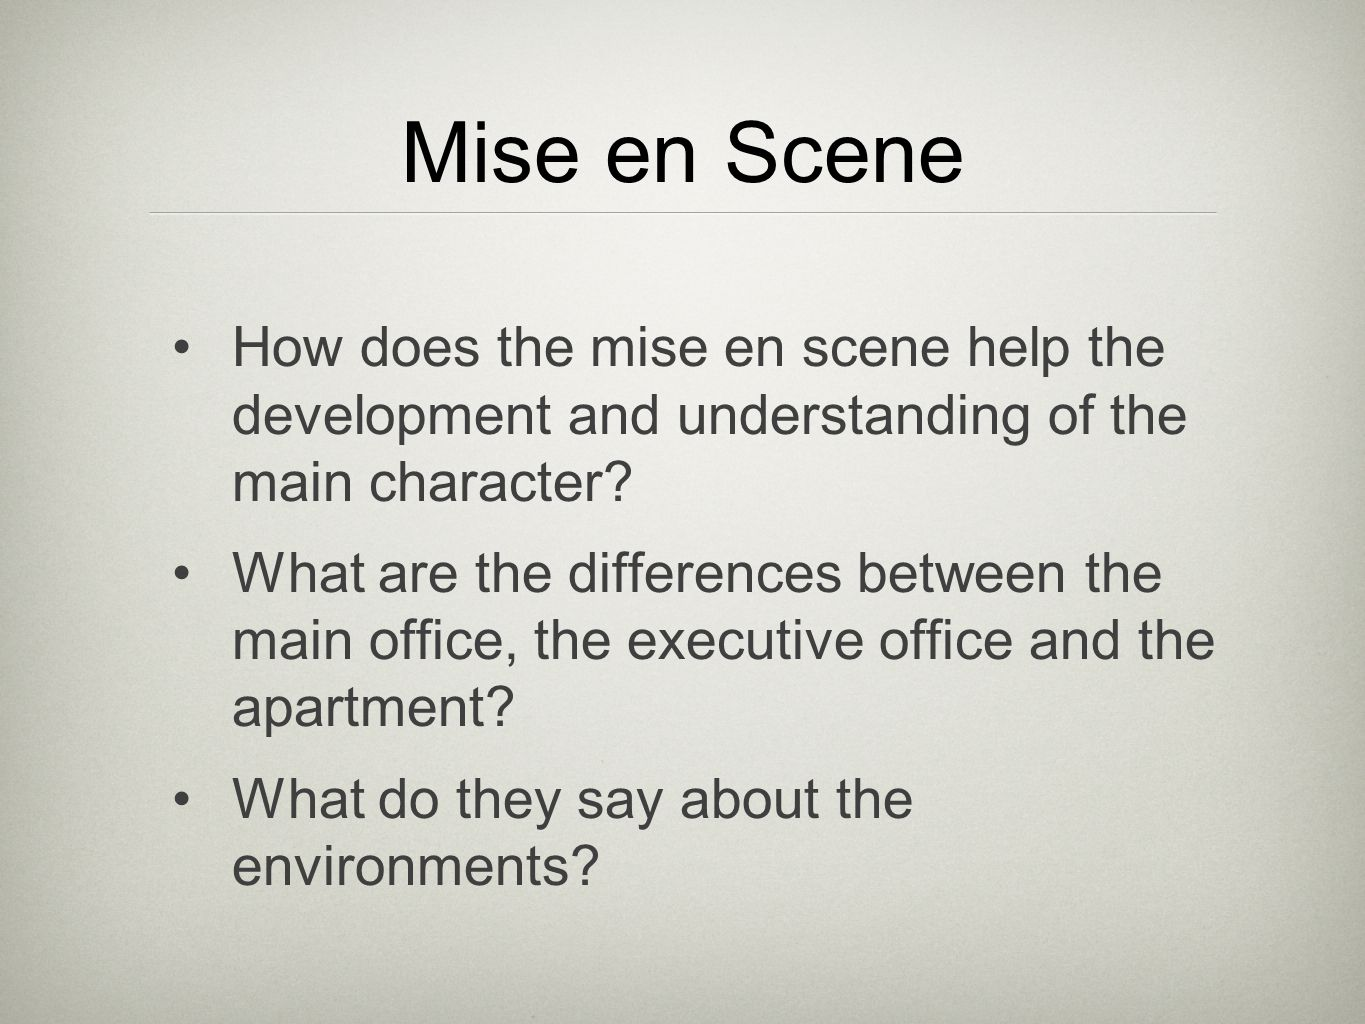 How does the mise en scene help the development and understanding of the main character.